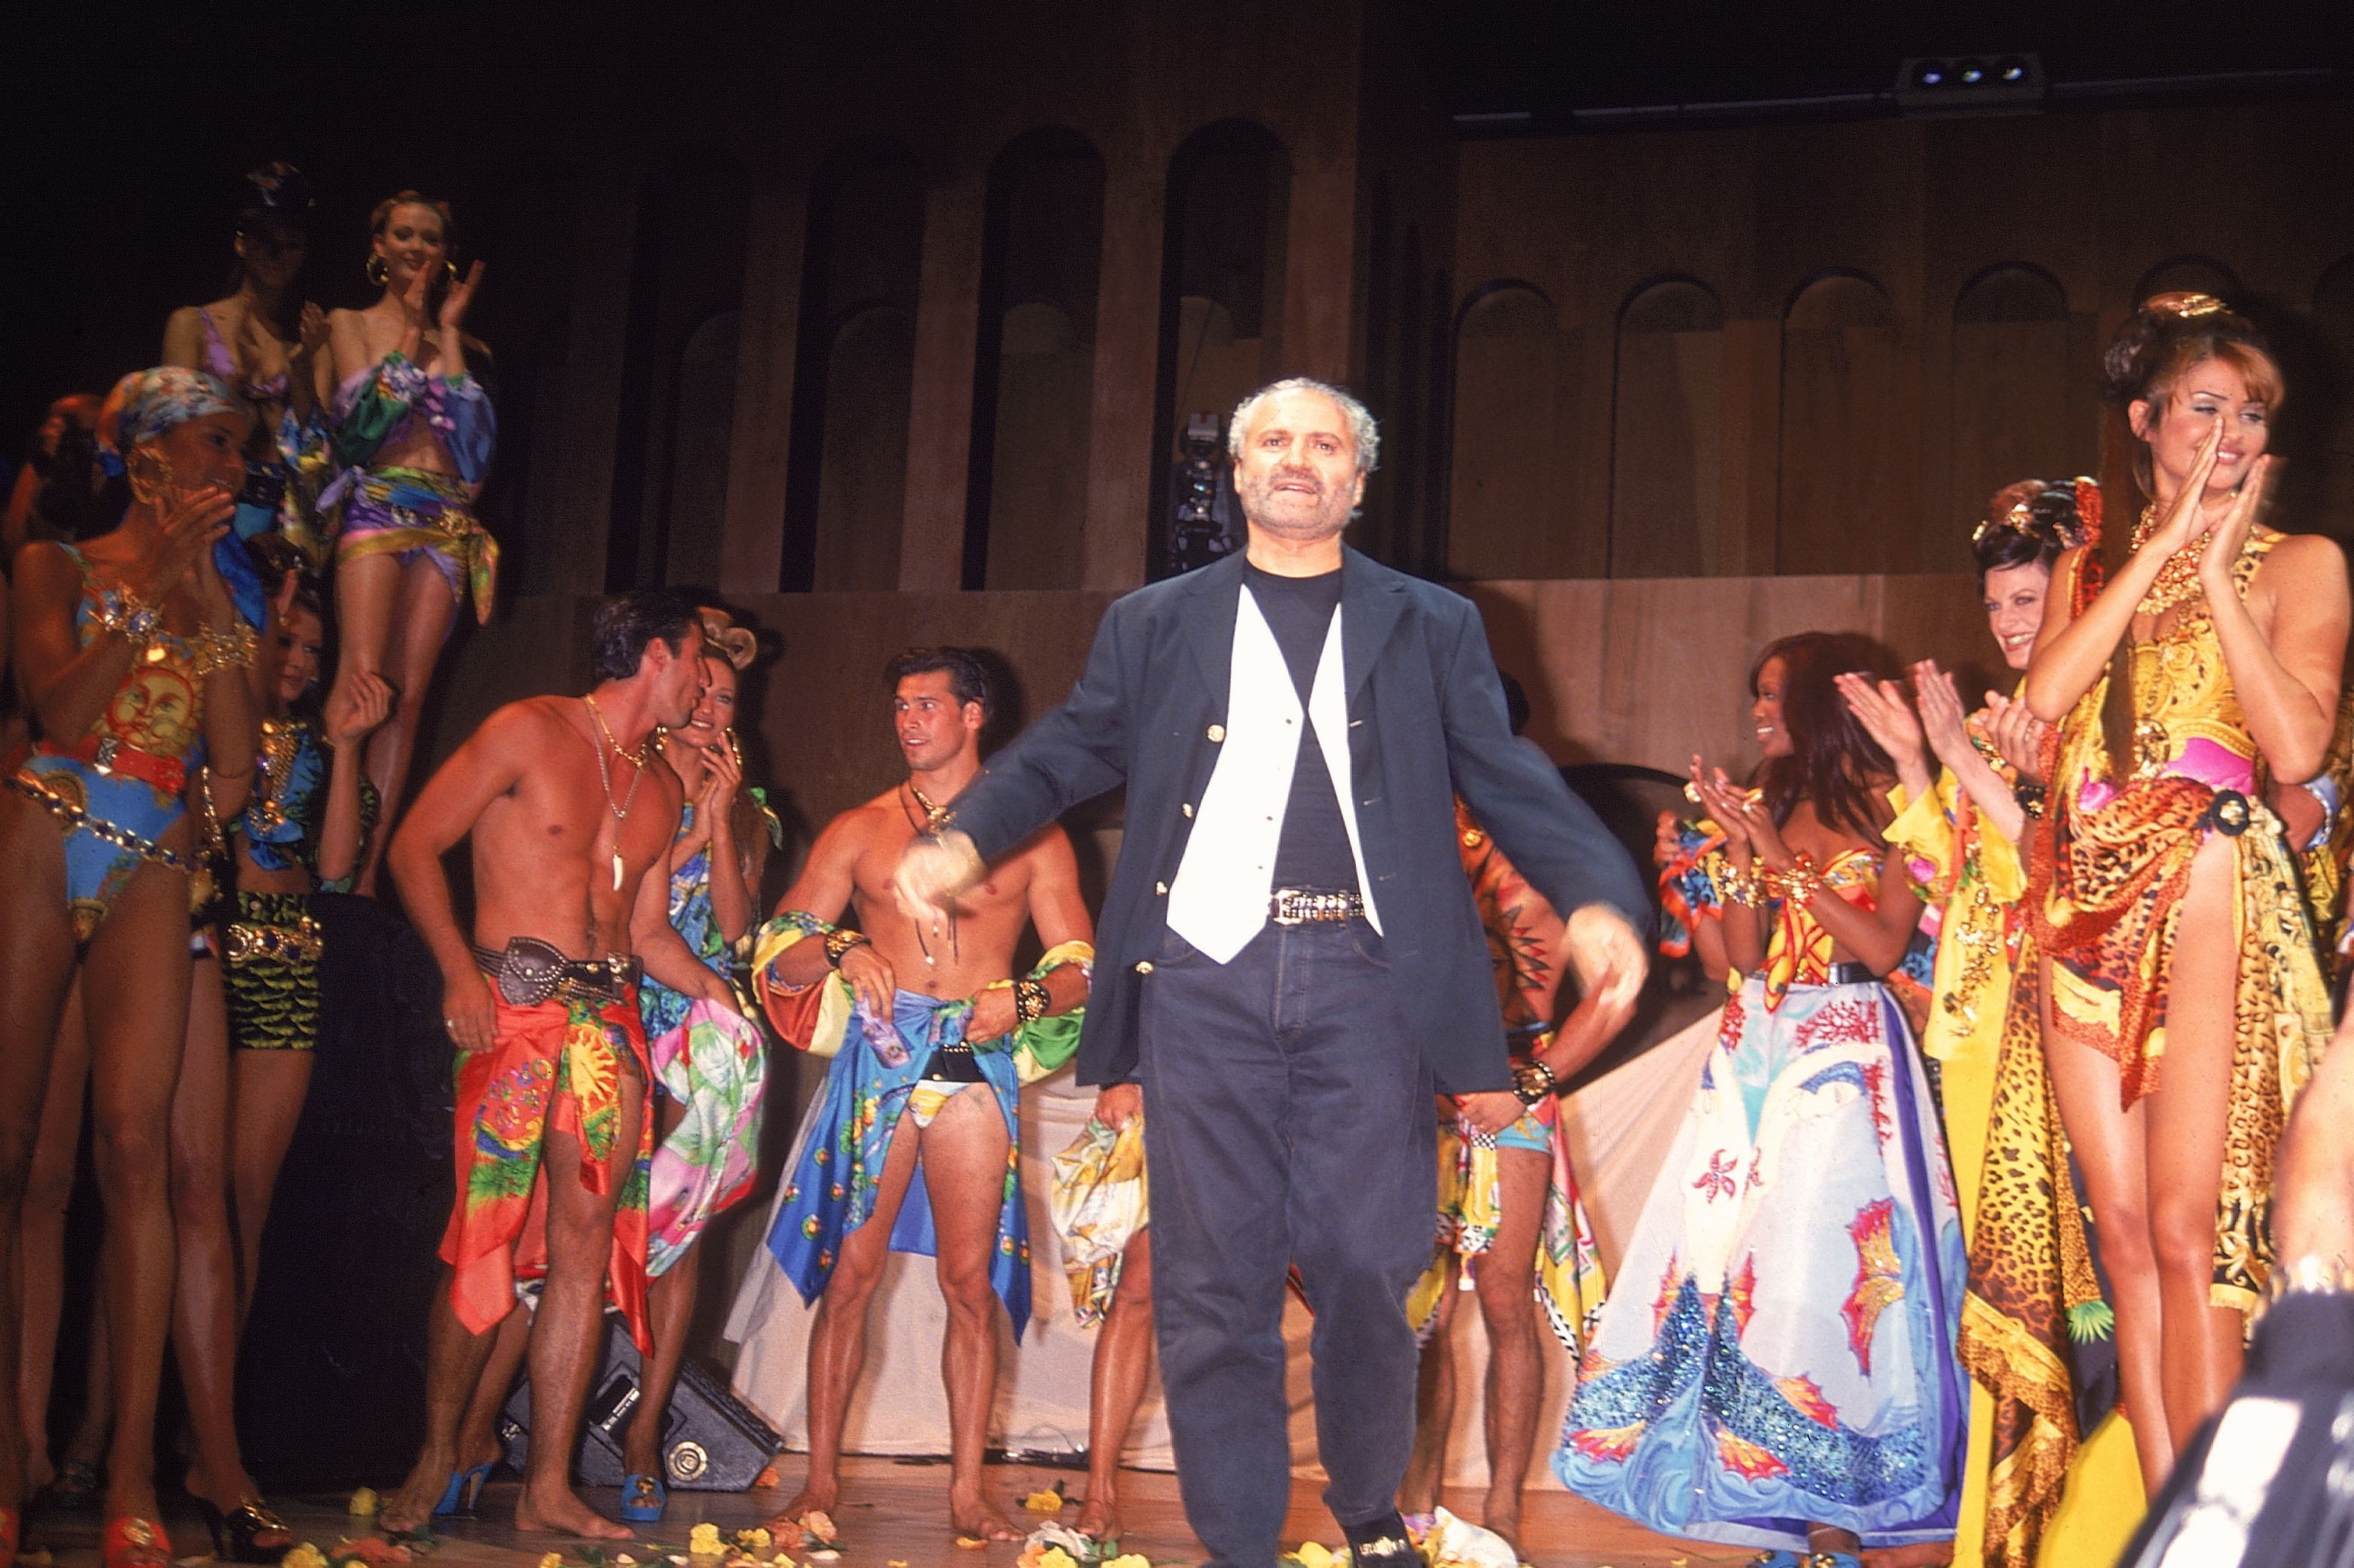 Designer Gianni Versace appearing at a fashion show.